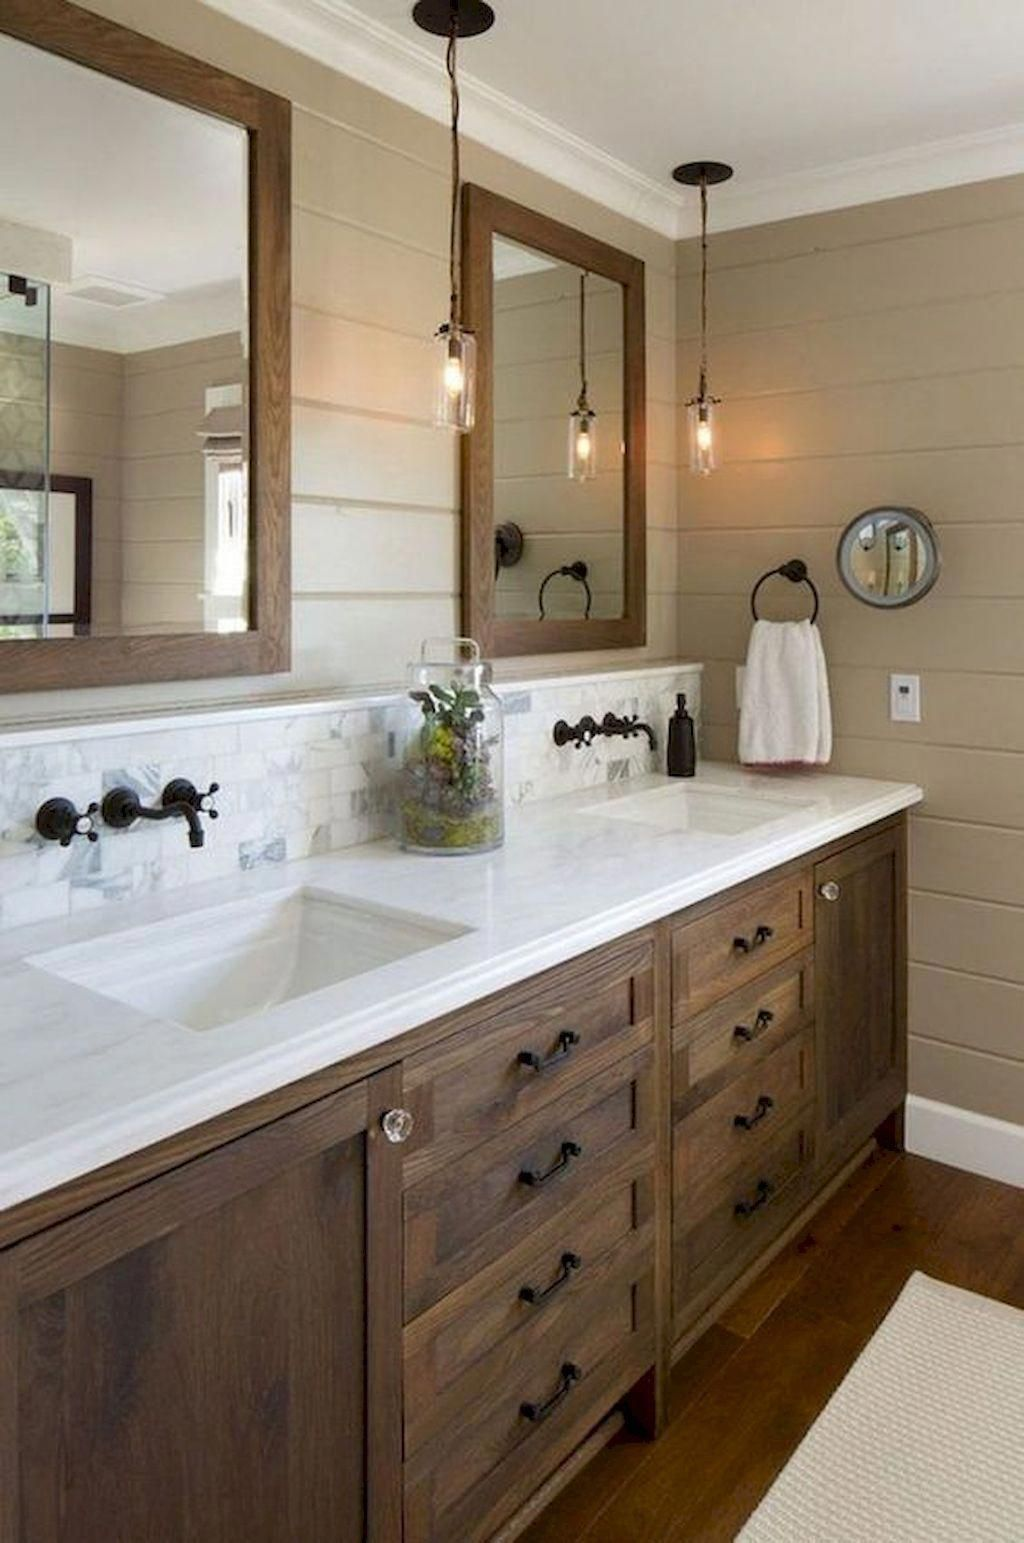 Budgeting Is An Essential Part Of Any Attempt In The House Remodeling If Done Thoroughly And Wisely In 2020 Small Bathroom Remodel Bathrooms Remodel Bathroom Vanity